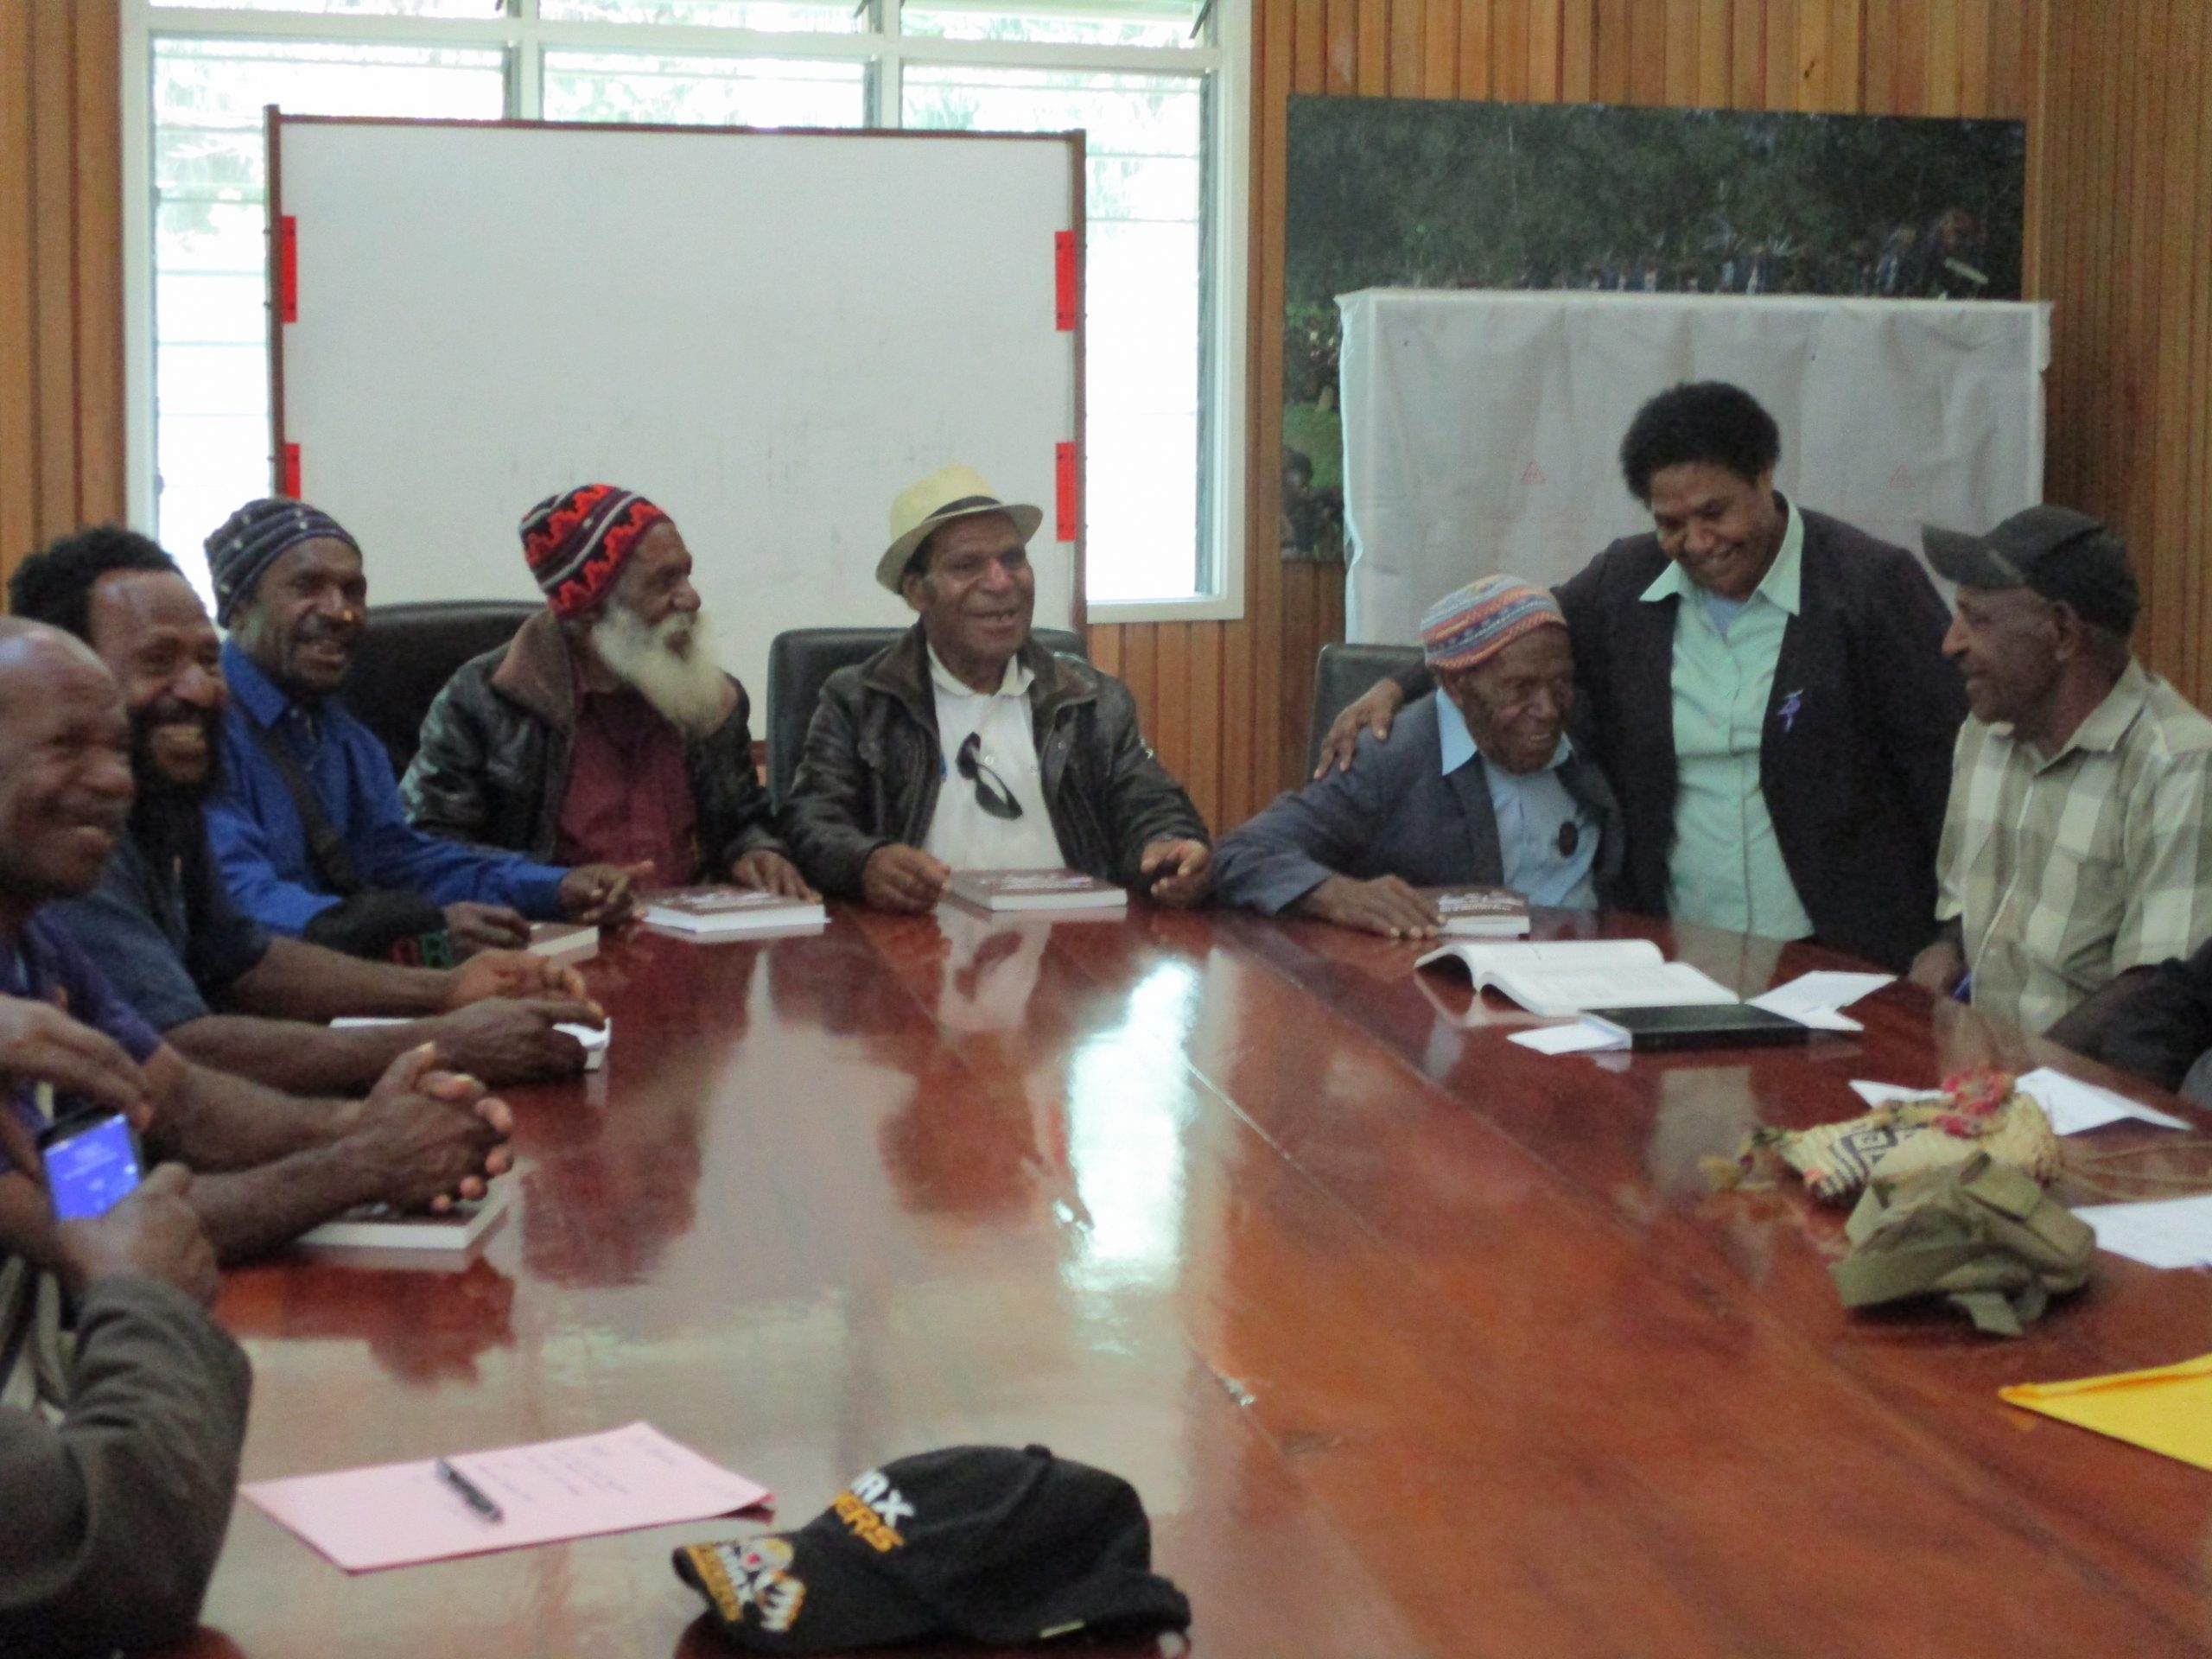 A group of magistrates from the Enga of Papua New Guinea sit around a conference table with papers in front of them.